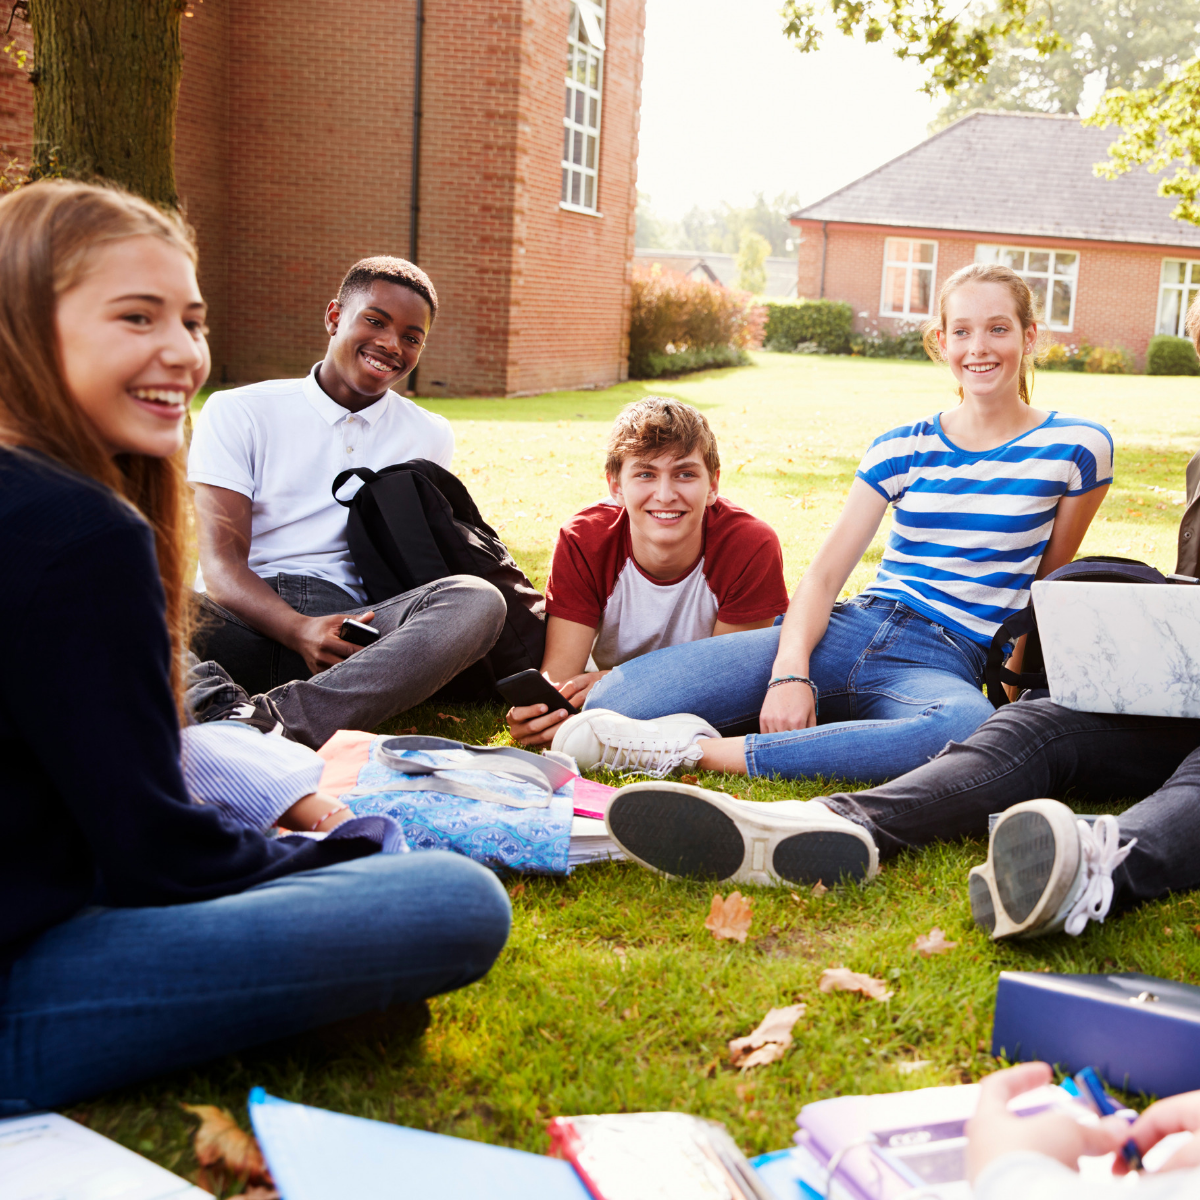 Group of young people smiling sat on the grass